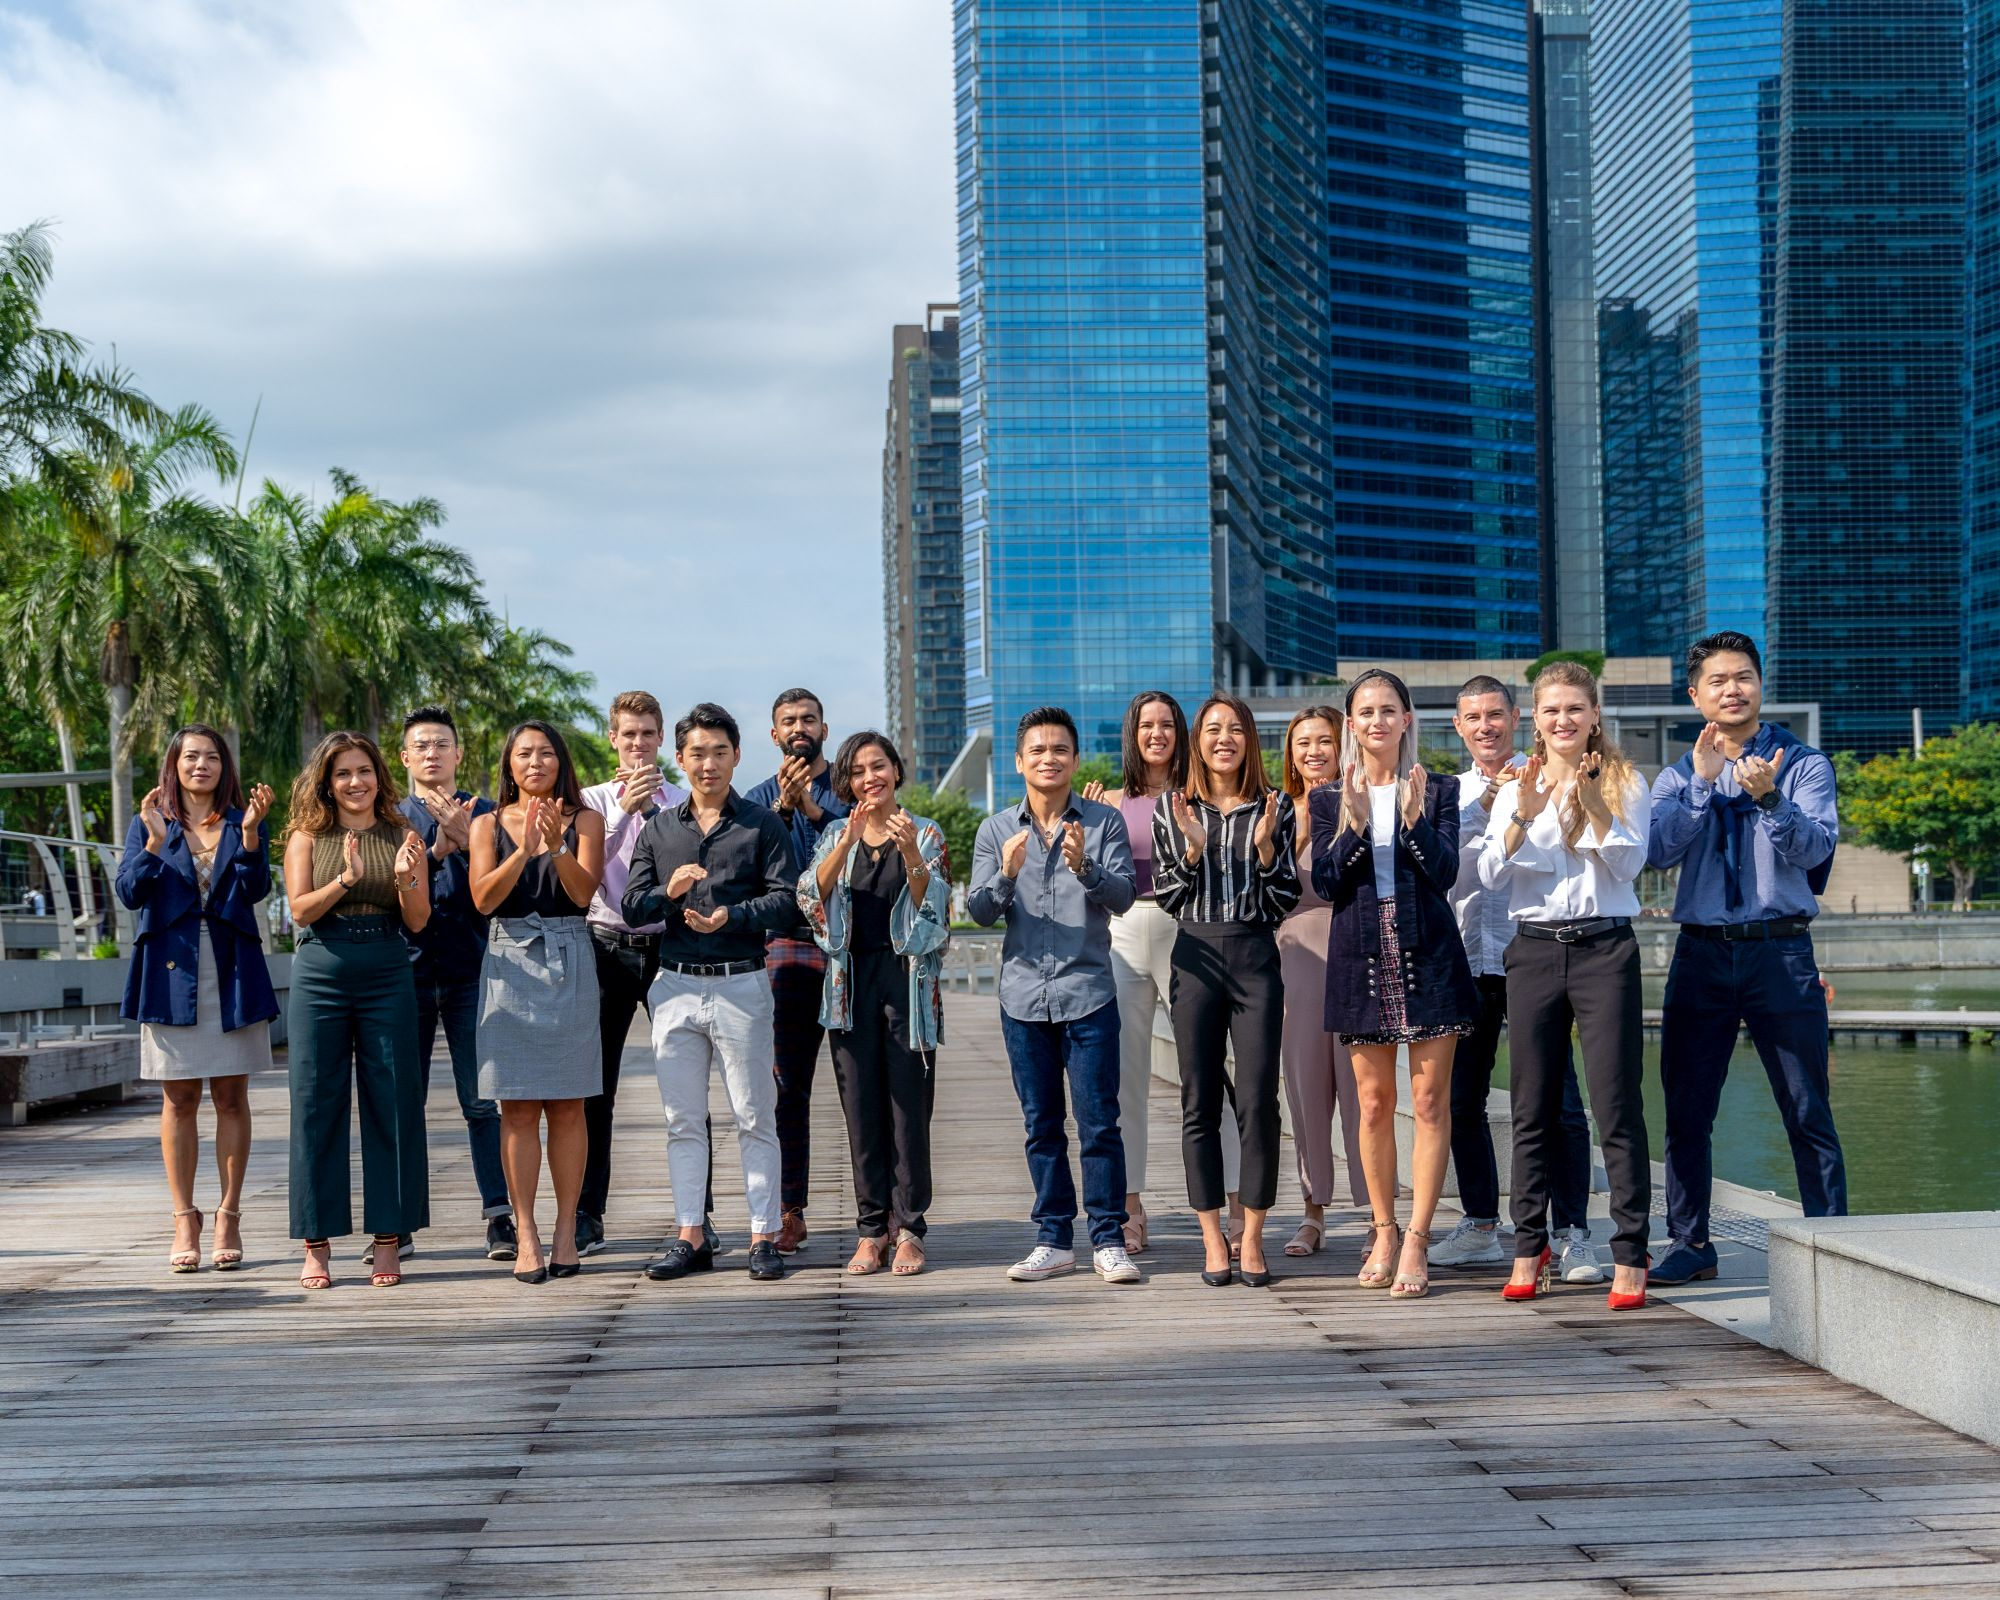 The Apprentice: One Championship Edition Contestants—Where Are They Now?